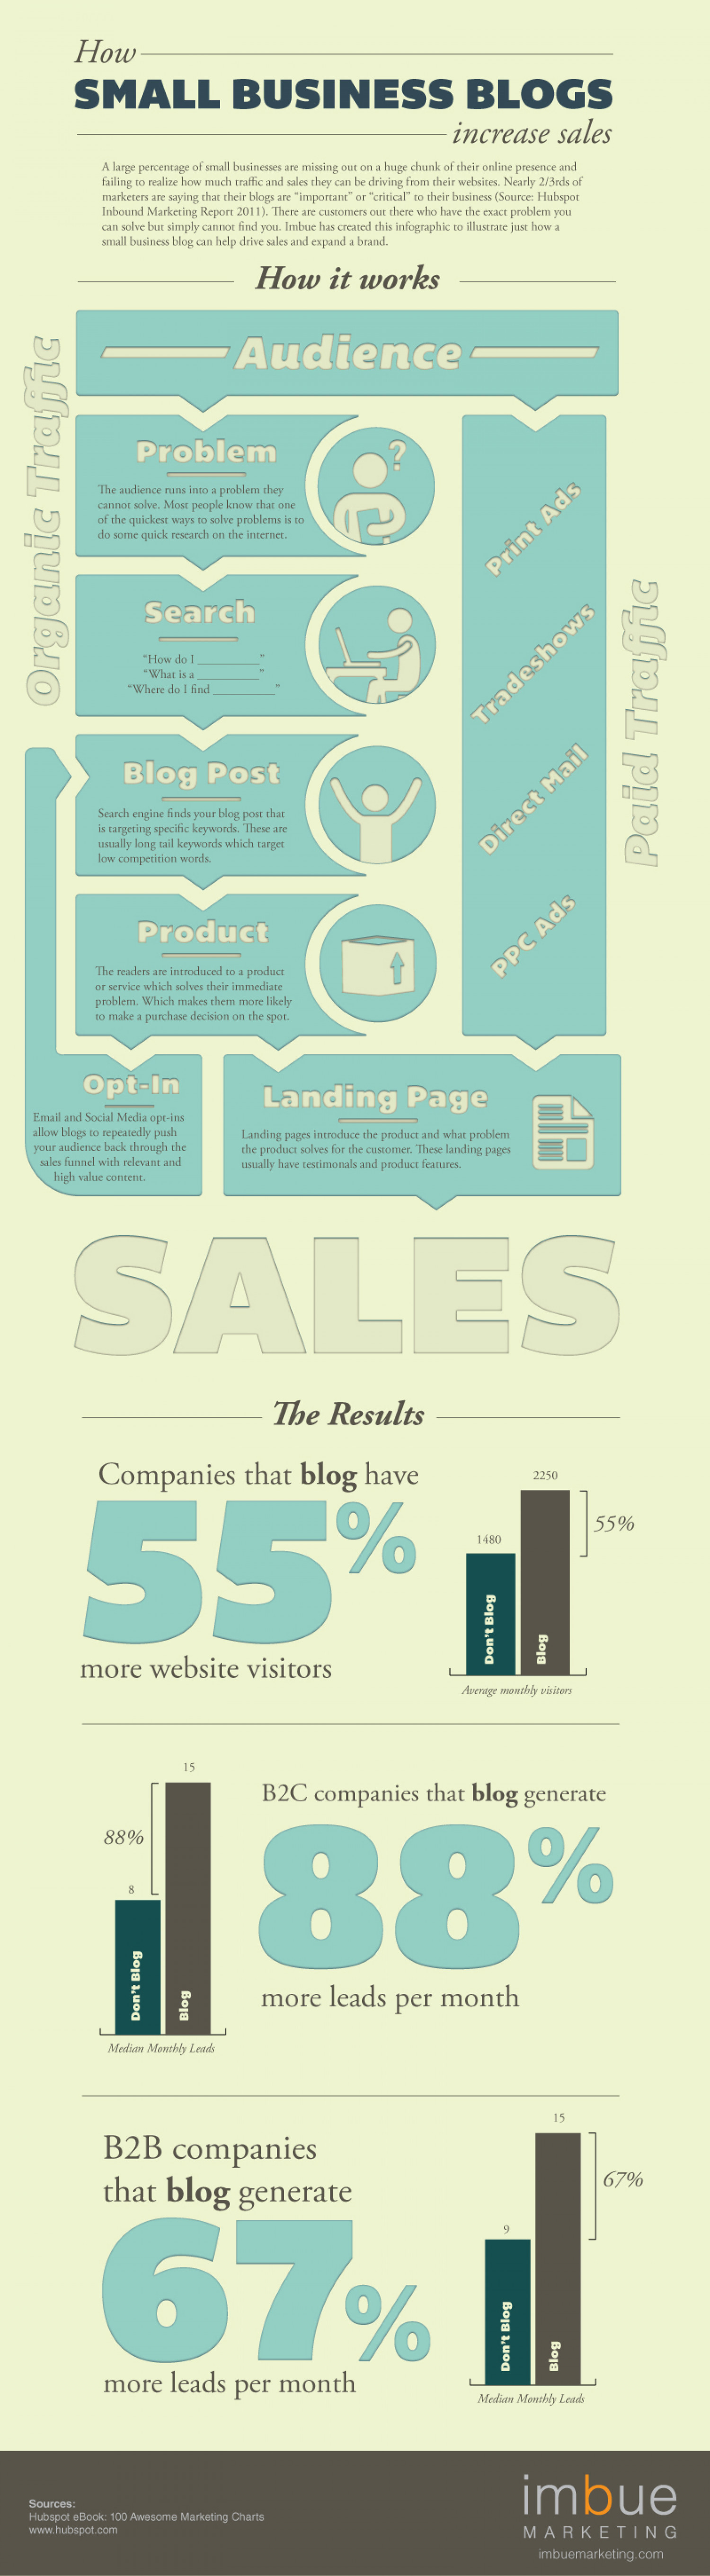 How Small Business Blogs Increase Sales Infographic